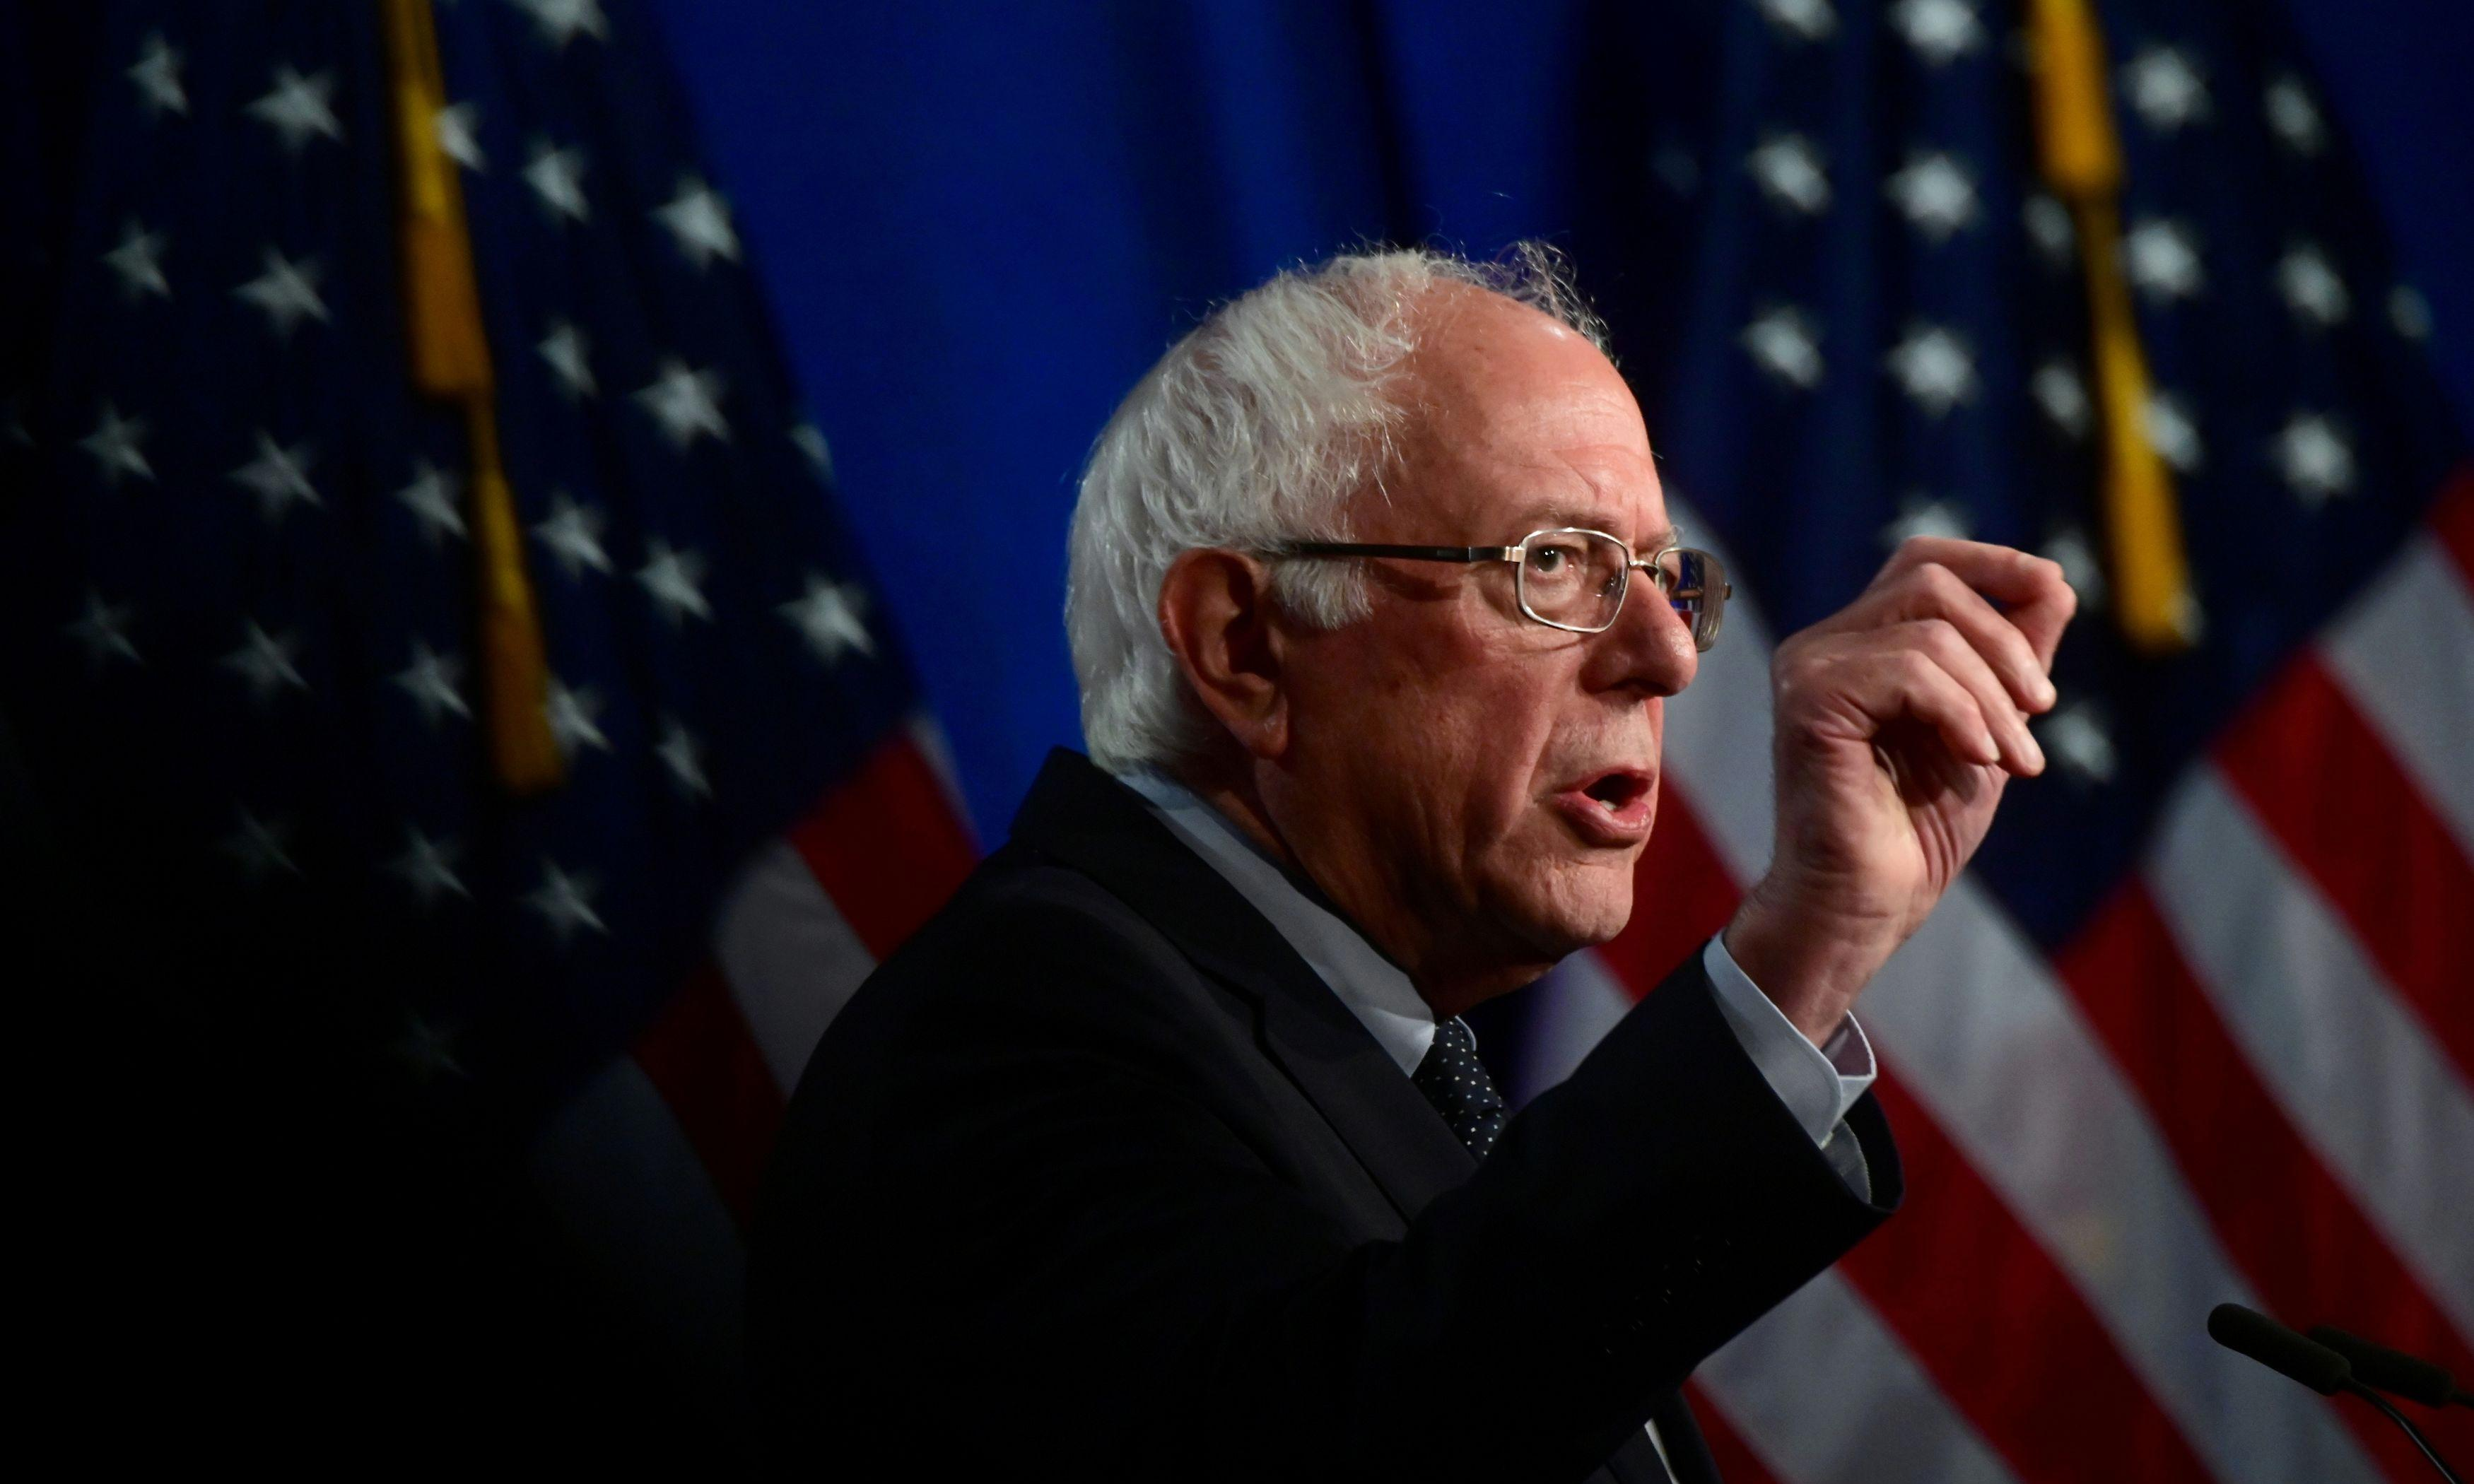 A 'brokered convention' designed to block Bernie Sanders would be a poison pill